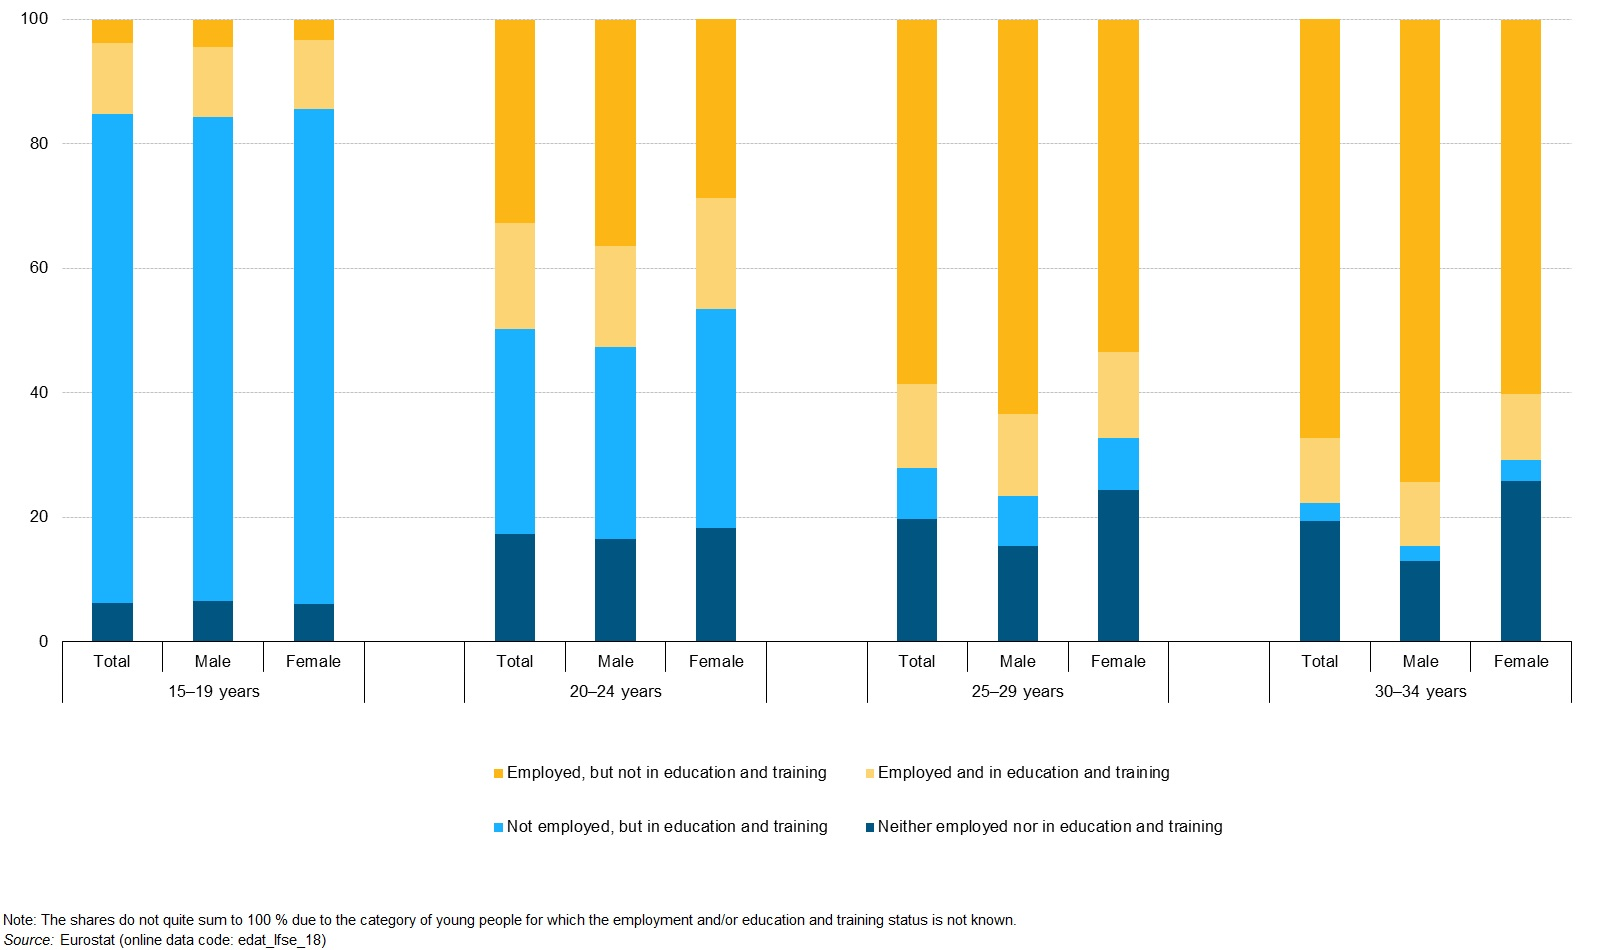 Employment education and training status of young people by age and sex EU-28 2015